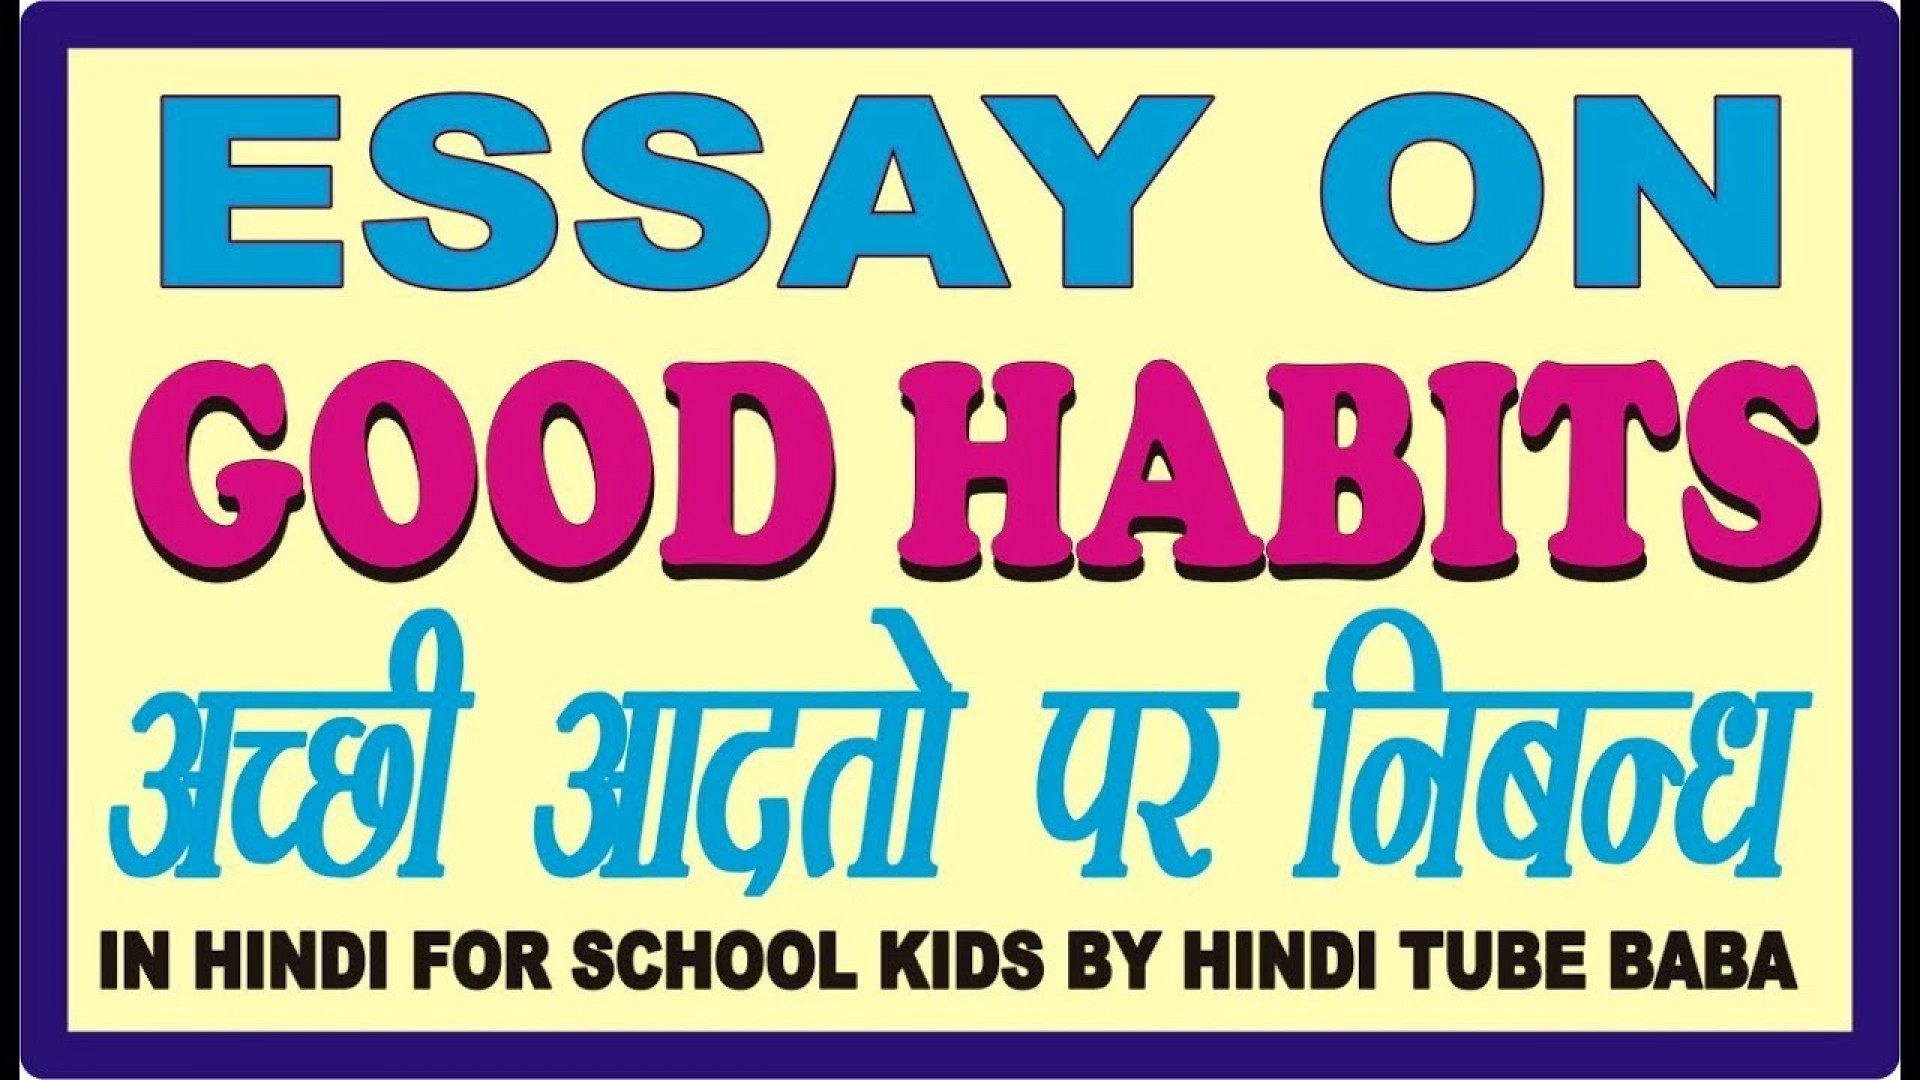 006 Good Habits Essay In Hindi Maxresdefault Exceptional Healthy Eating Reading Is A Habit 1920